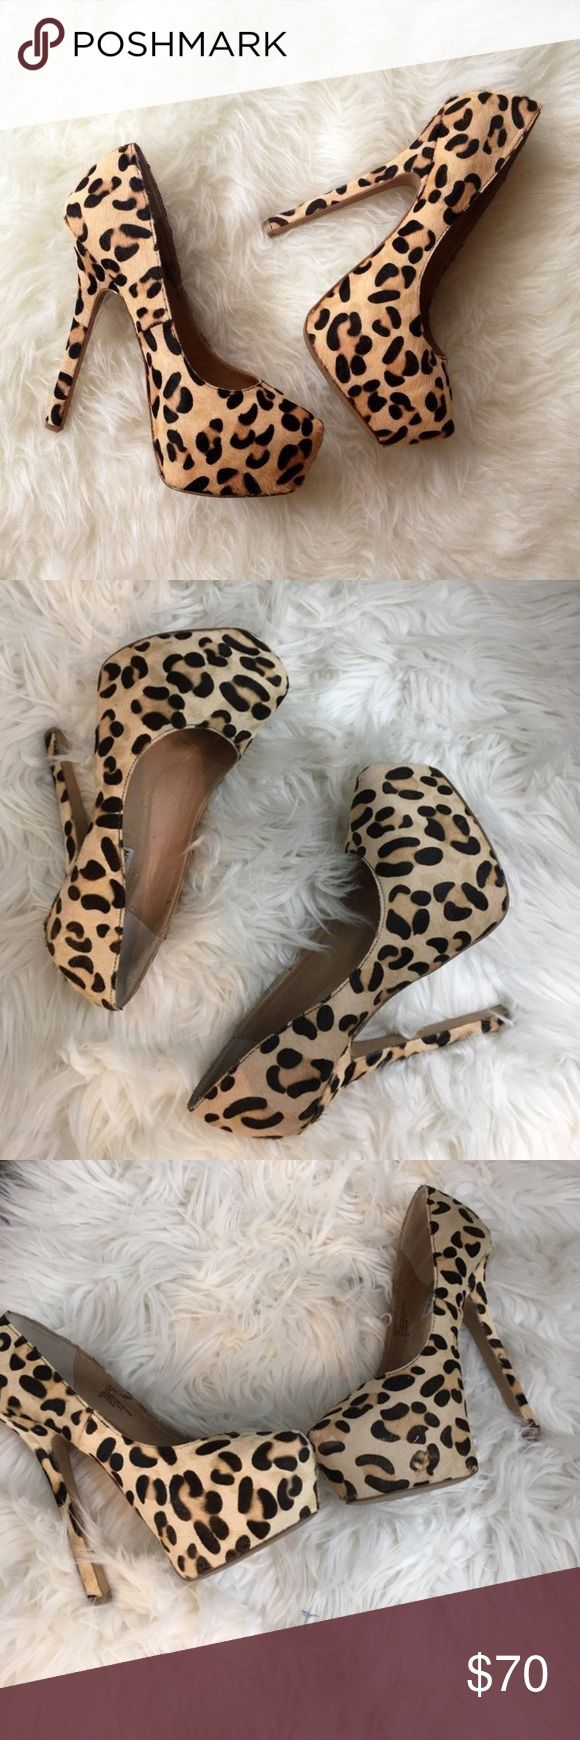 SM Dejavu Desire Cheetah Heels Steve Madden Cheetah Print High Heel Platforms. Size 6.5. EUC. 💛Please send reasonable offers through the offer button!💛 Steve Madden Shoes Heels